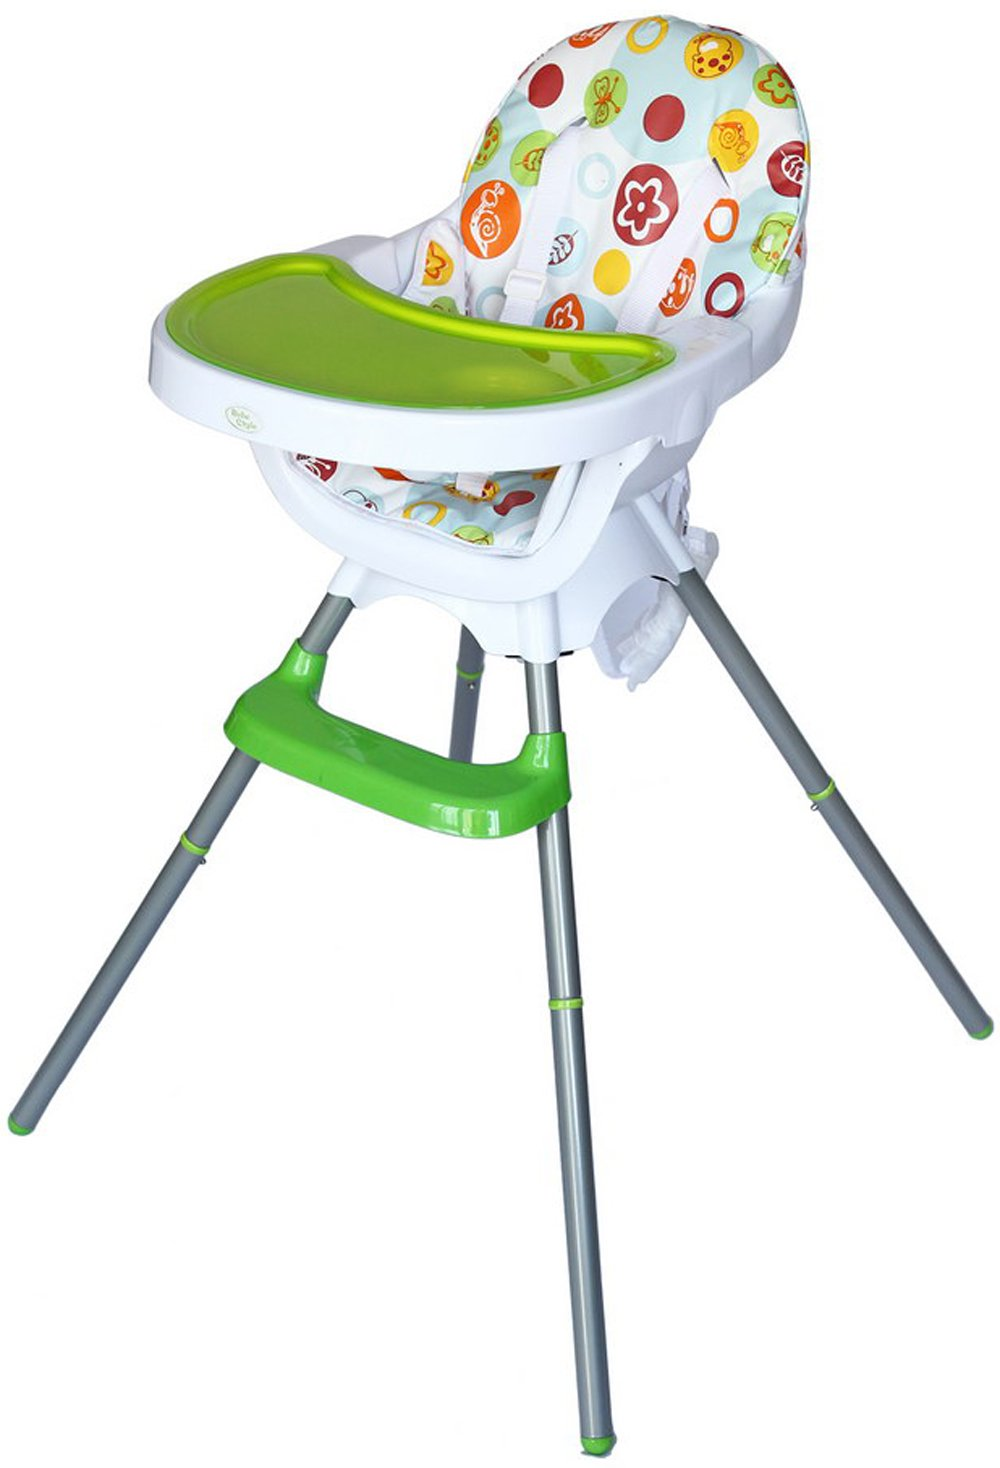 Remarkable Best Baby High Chair Reviews Top Rated Baby High Chairs Creativecarmelina Interior Chair Design Creativecarmelinacom